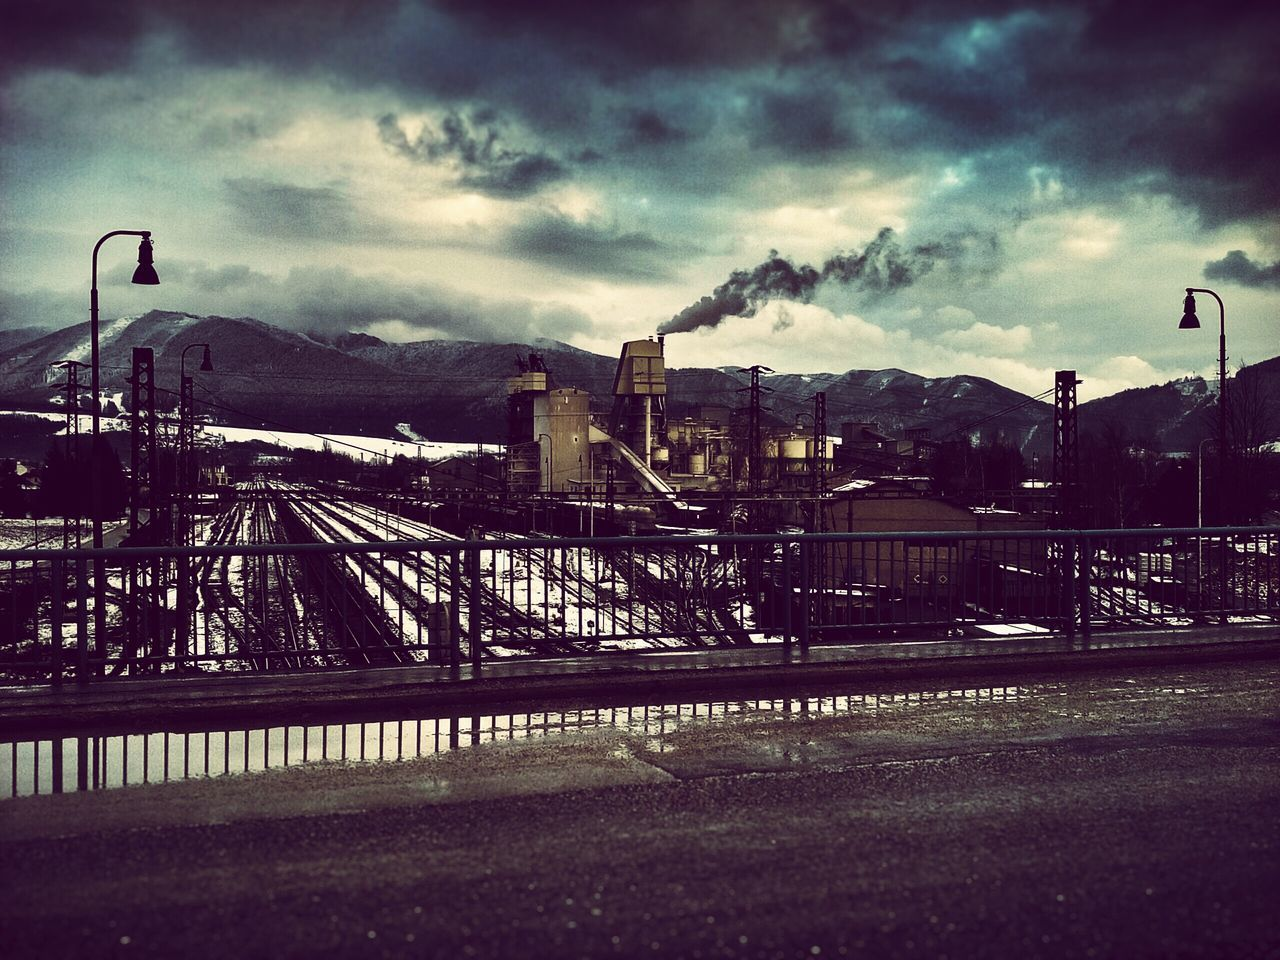 Railway IndustryChimney Rails Bridge Reflections Clouds Dramatic Sky Mountains Varín Industrial Landscapes Slovakia Showcase: February Winter Smoke